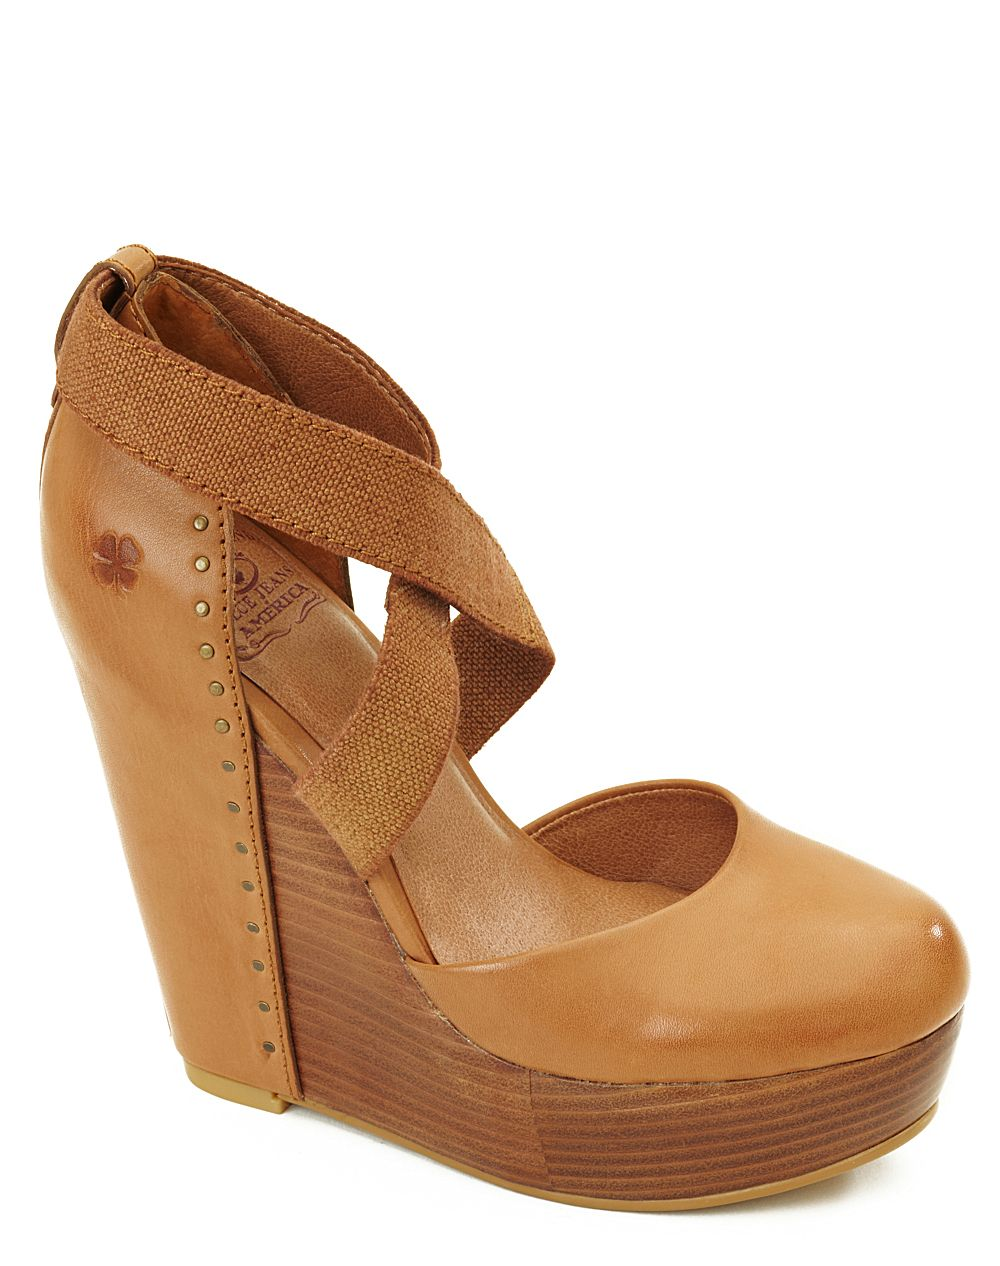 3cdb624efce1 Lyst - Lucky Brand Nana Leather-covered Wedges in Brown